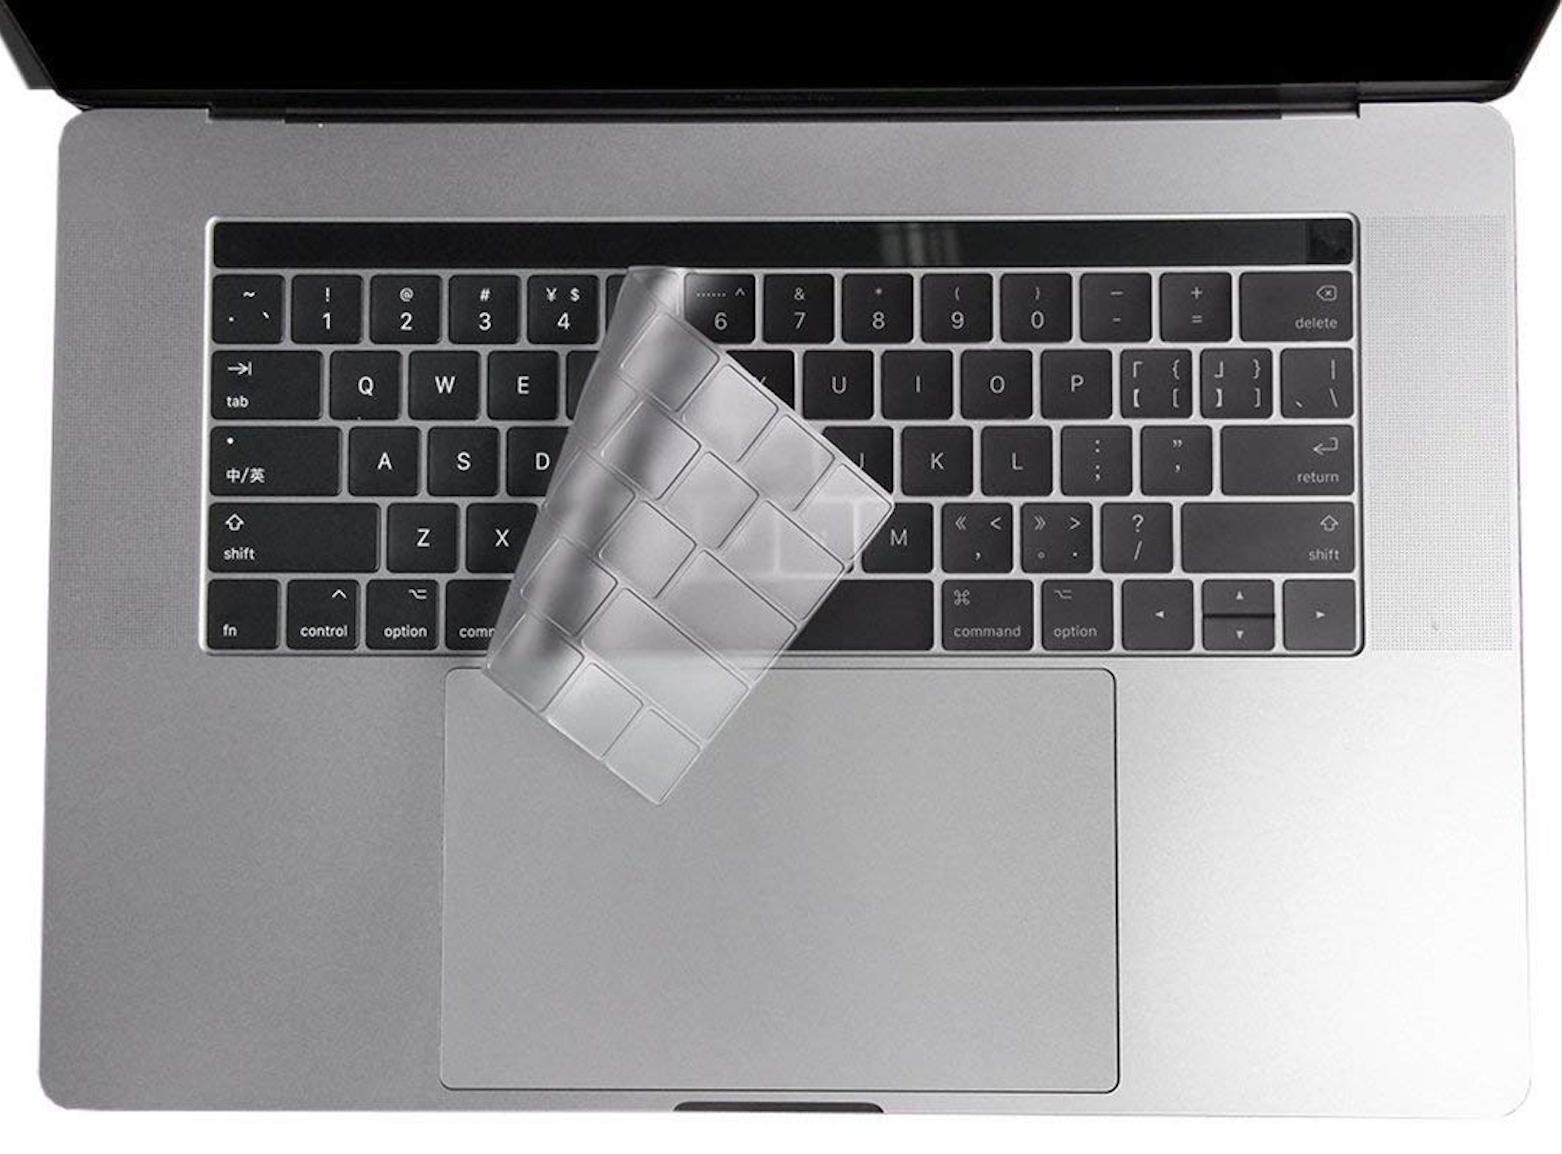 Skin Decal Stickers Buy At Best Price In Keyboard Protector Silicone 14 Inch Ct Ultra Thin Clear Macbook Cover Keyguard Tpu